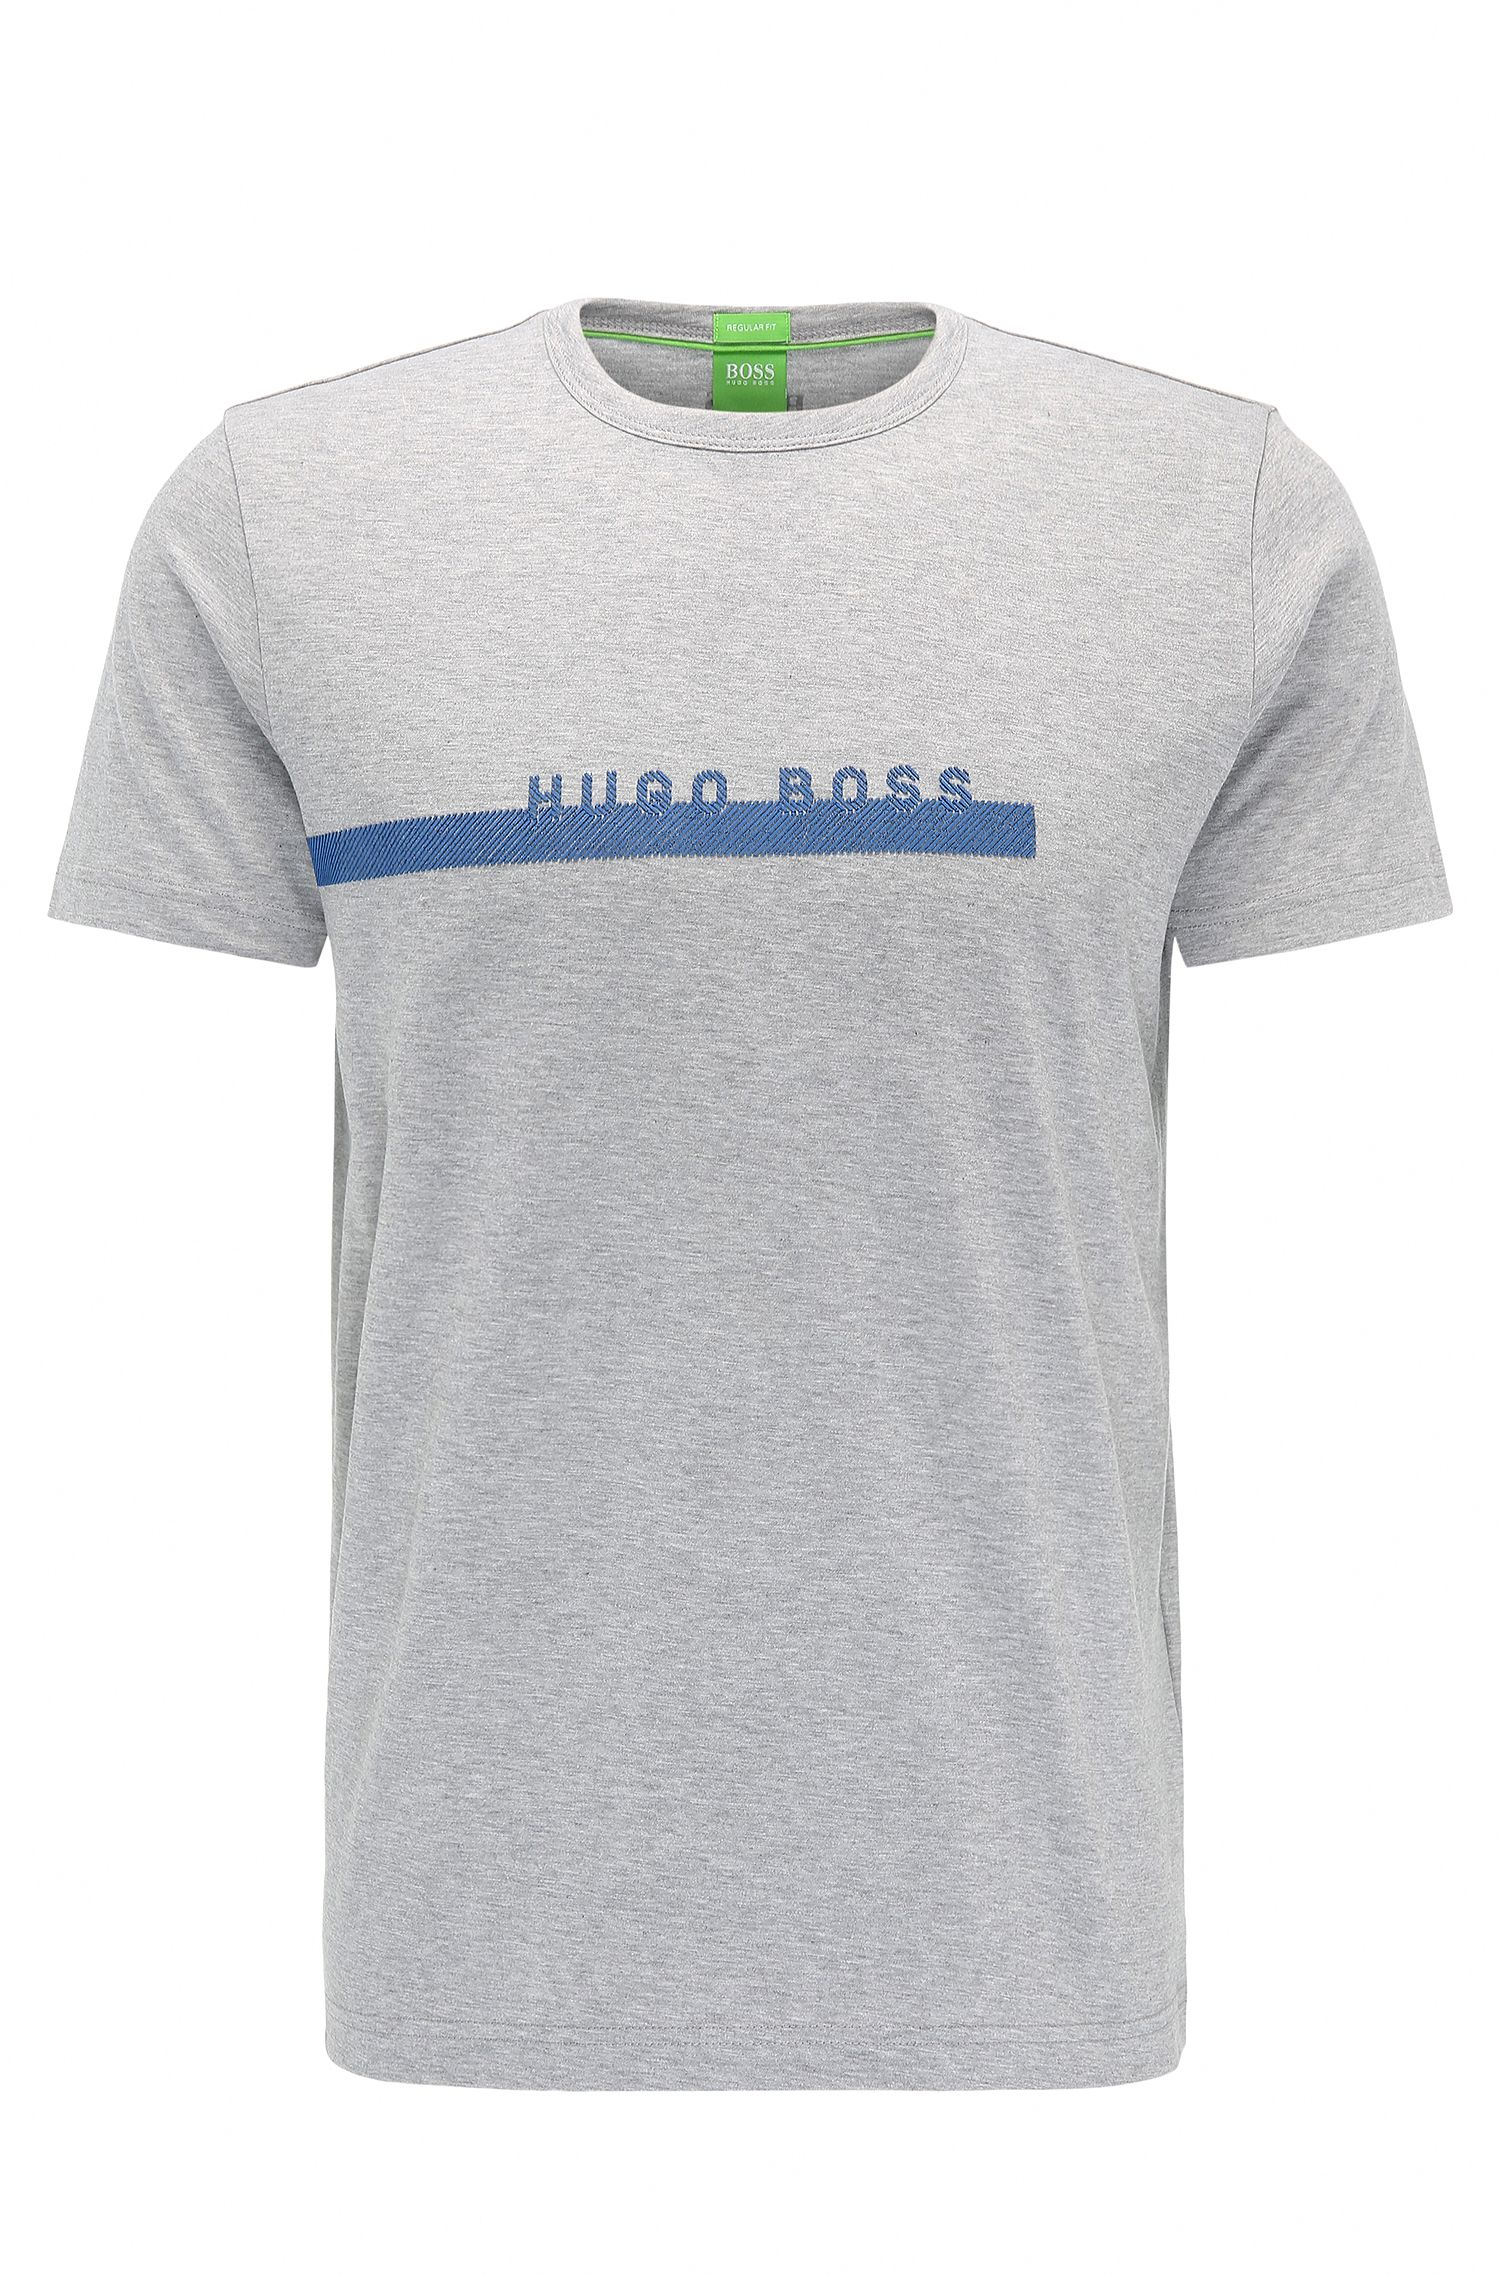 Regular-fit logo T-shirt in soft cotton